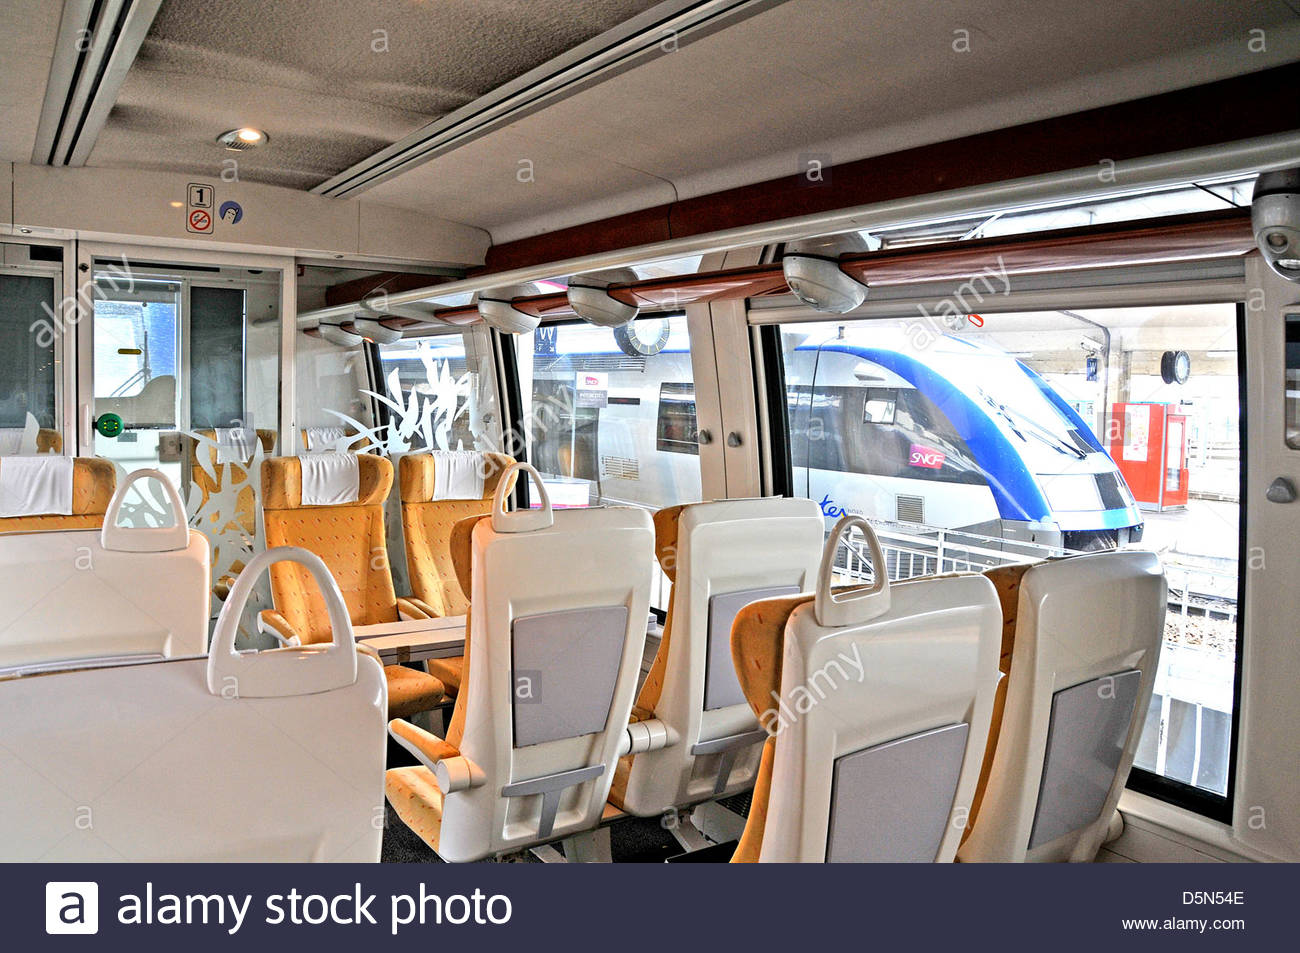 interior of ter train clermont ferrand france stock photo royalty free image 55169422 alamy. Black Bedroom Furniture Sets. Home Design Ideas